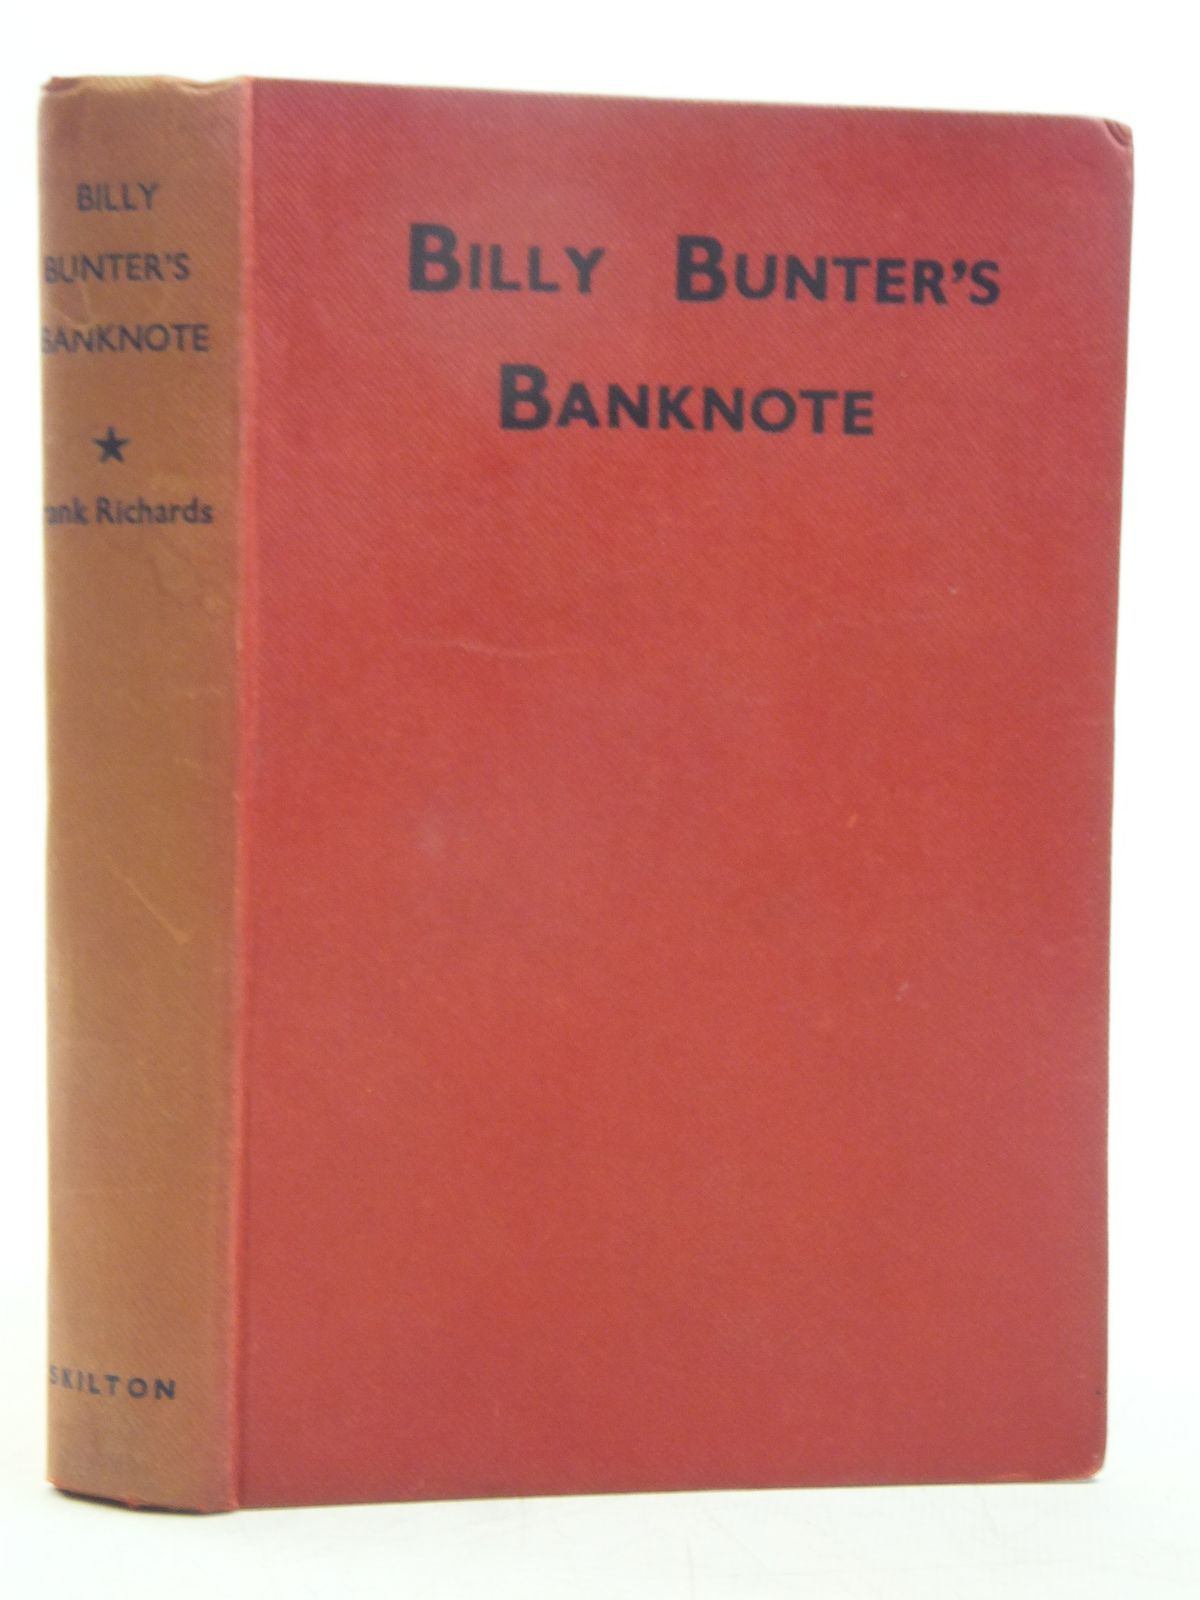 Photo of BILLY BUNTER'S BANKNOTE written by Richards, Frank illustrated by Macdonald, R.J. published by Charles Skilton Ltd. (STOCK CODE: 2119181)  for sale by Stella & Rose's Books